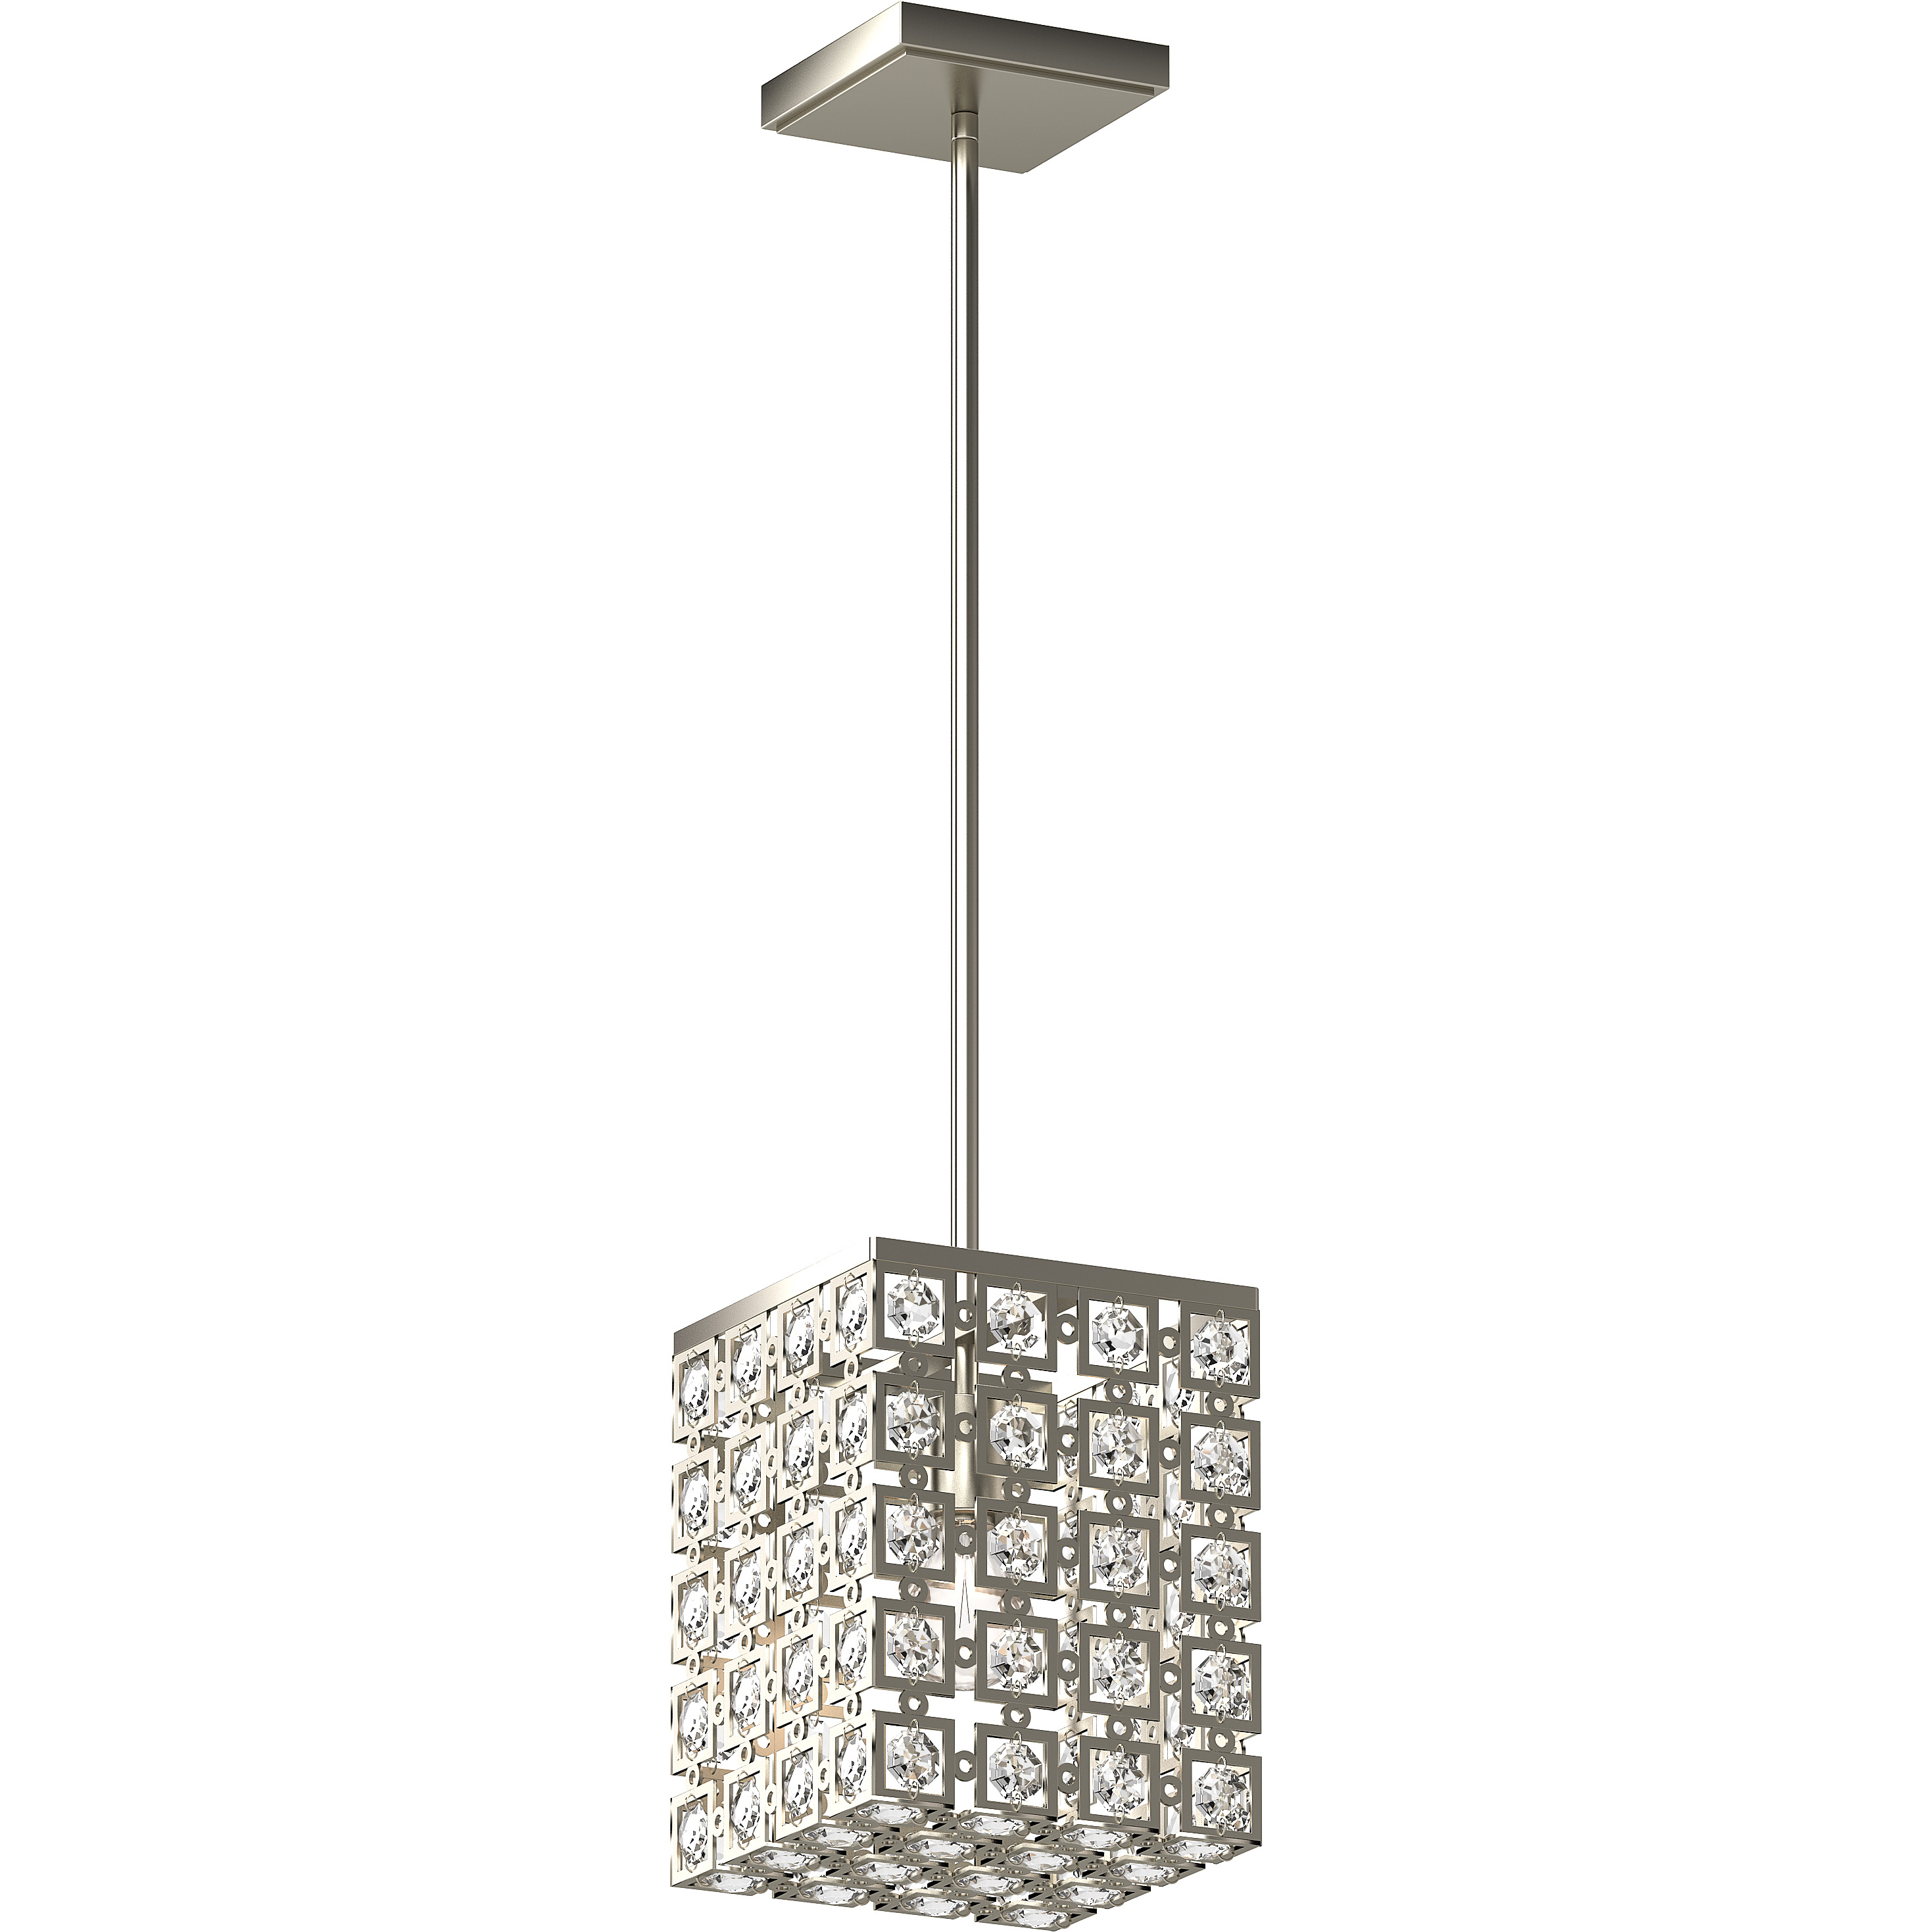 V5211 33 1 Light Indoor Elegant Glam Glamorous Brushed Nickel Square Rectangle Downrod Mini Pendant With Sparkling Bejeweled Glass Diamond Jewel Crystals Volume Lighting